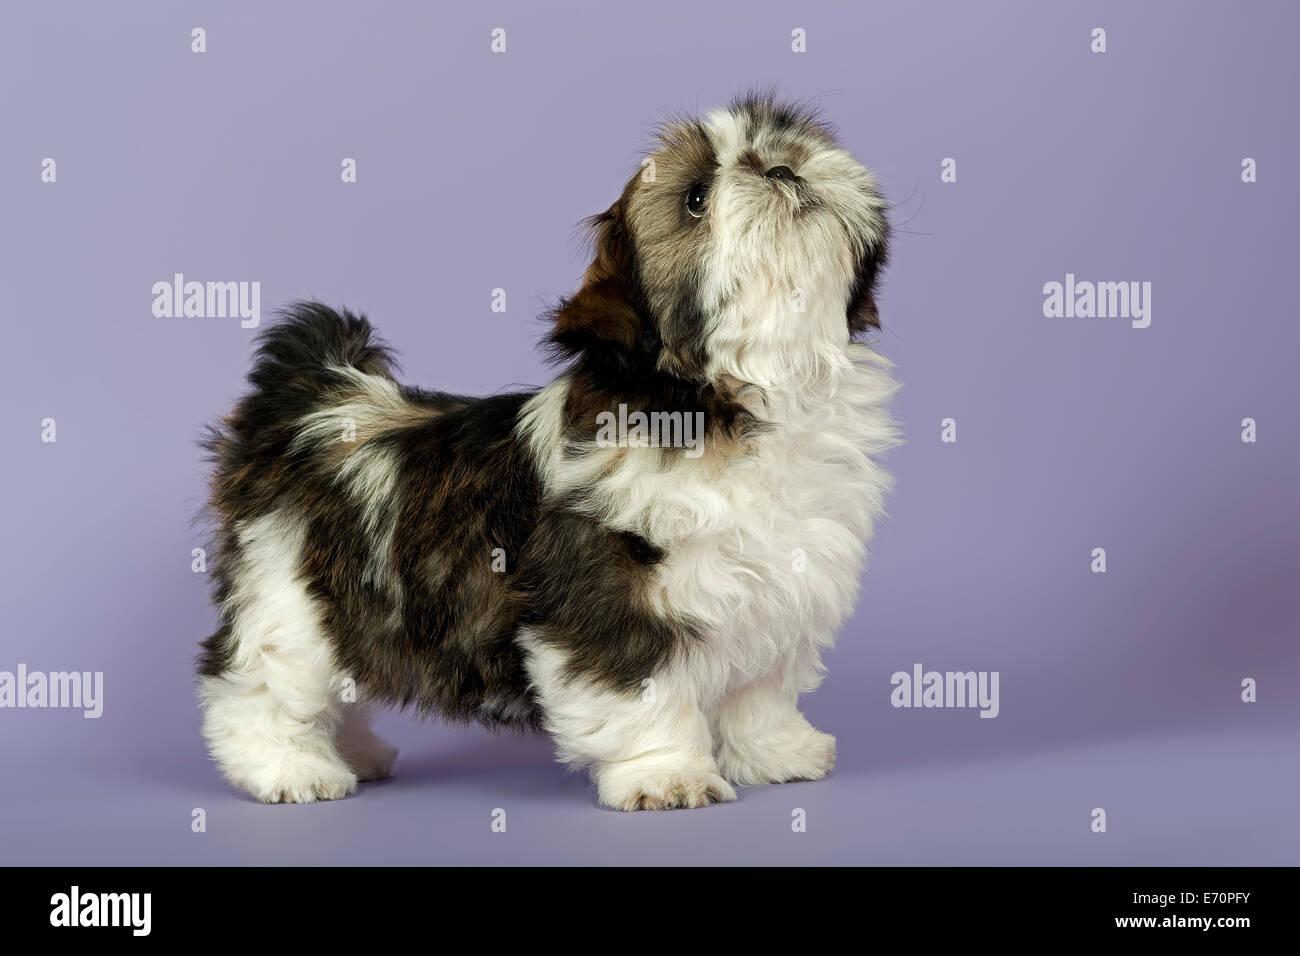 Shih Tzu Puppy 10 Weeks Gold White Stock Photo 73161759 Alamy